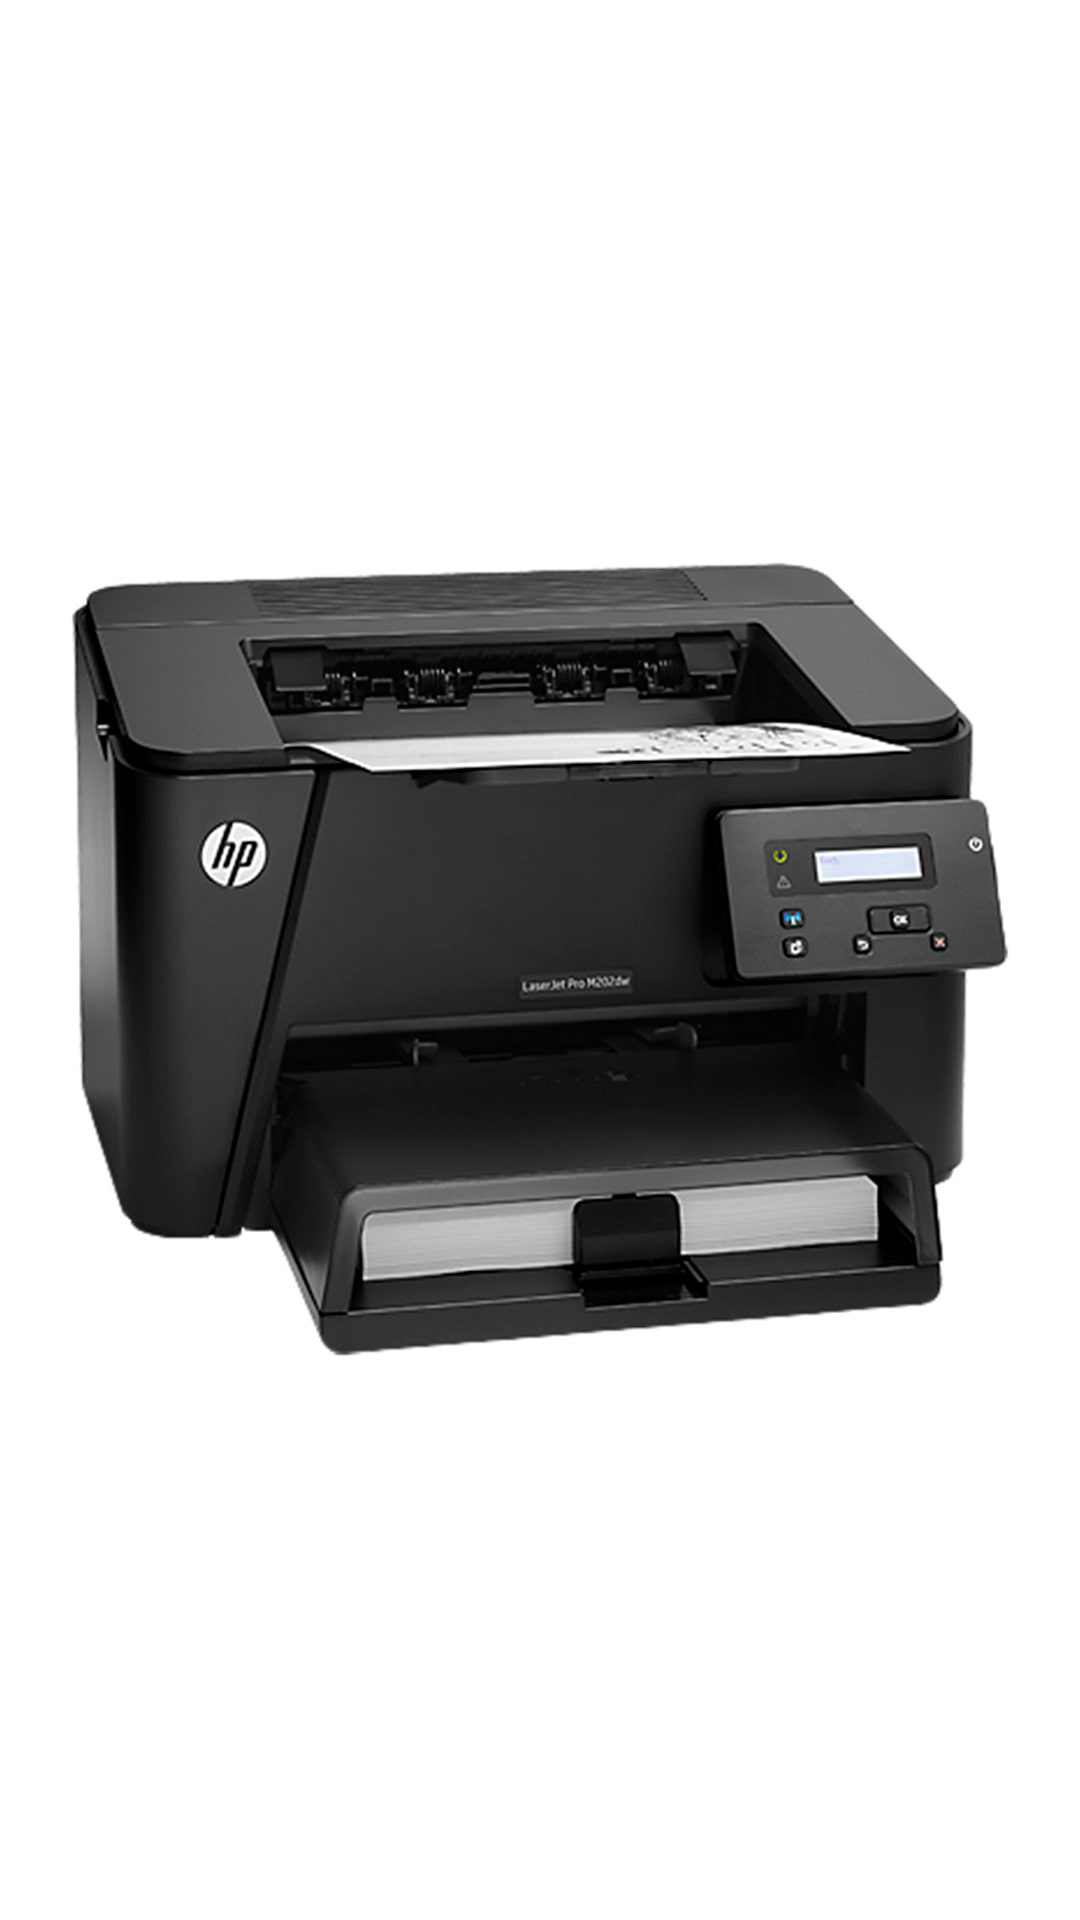 HP LaserJet Pro M202dw Single-Function Laser Printer